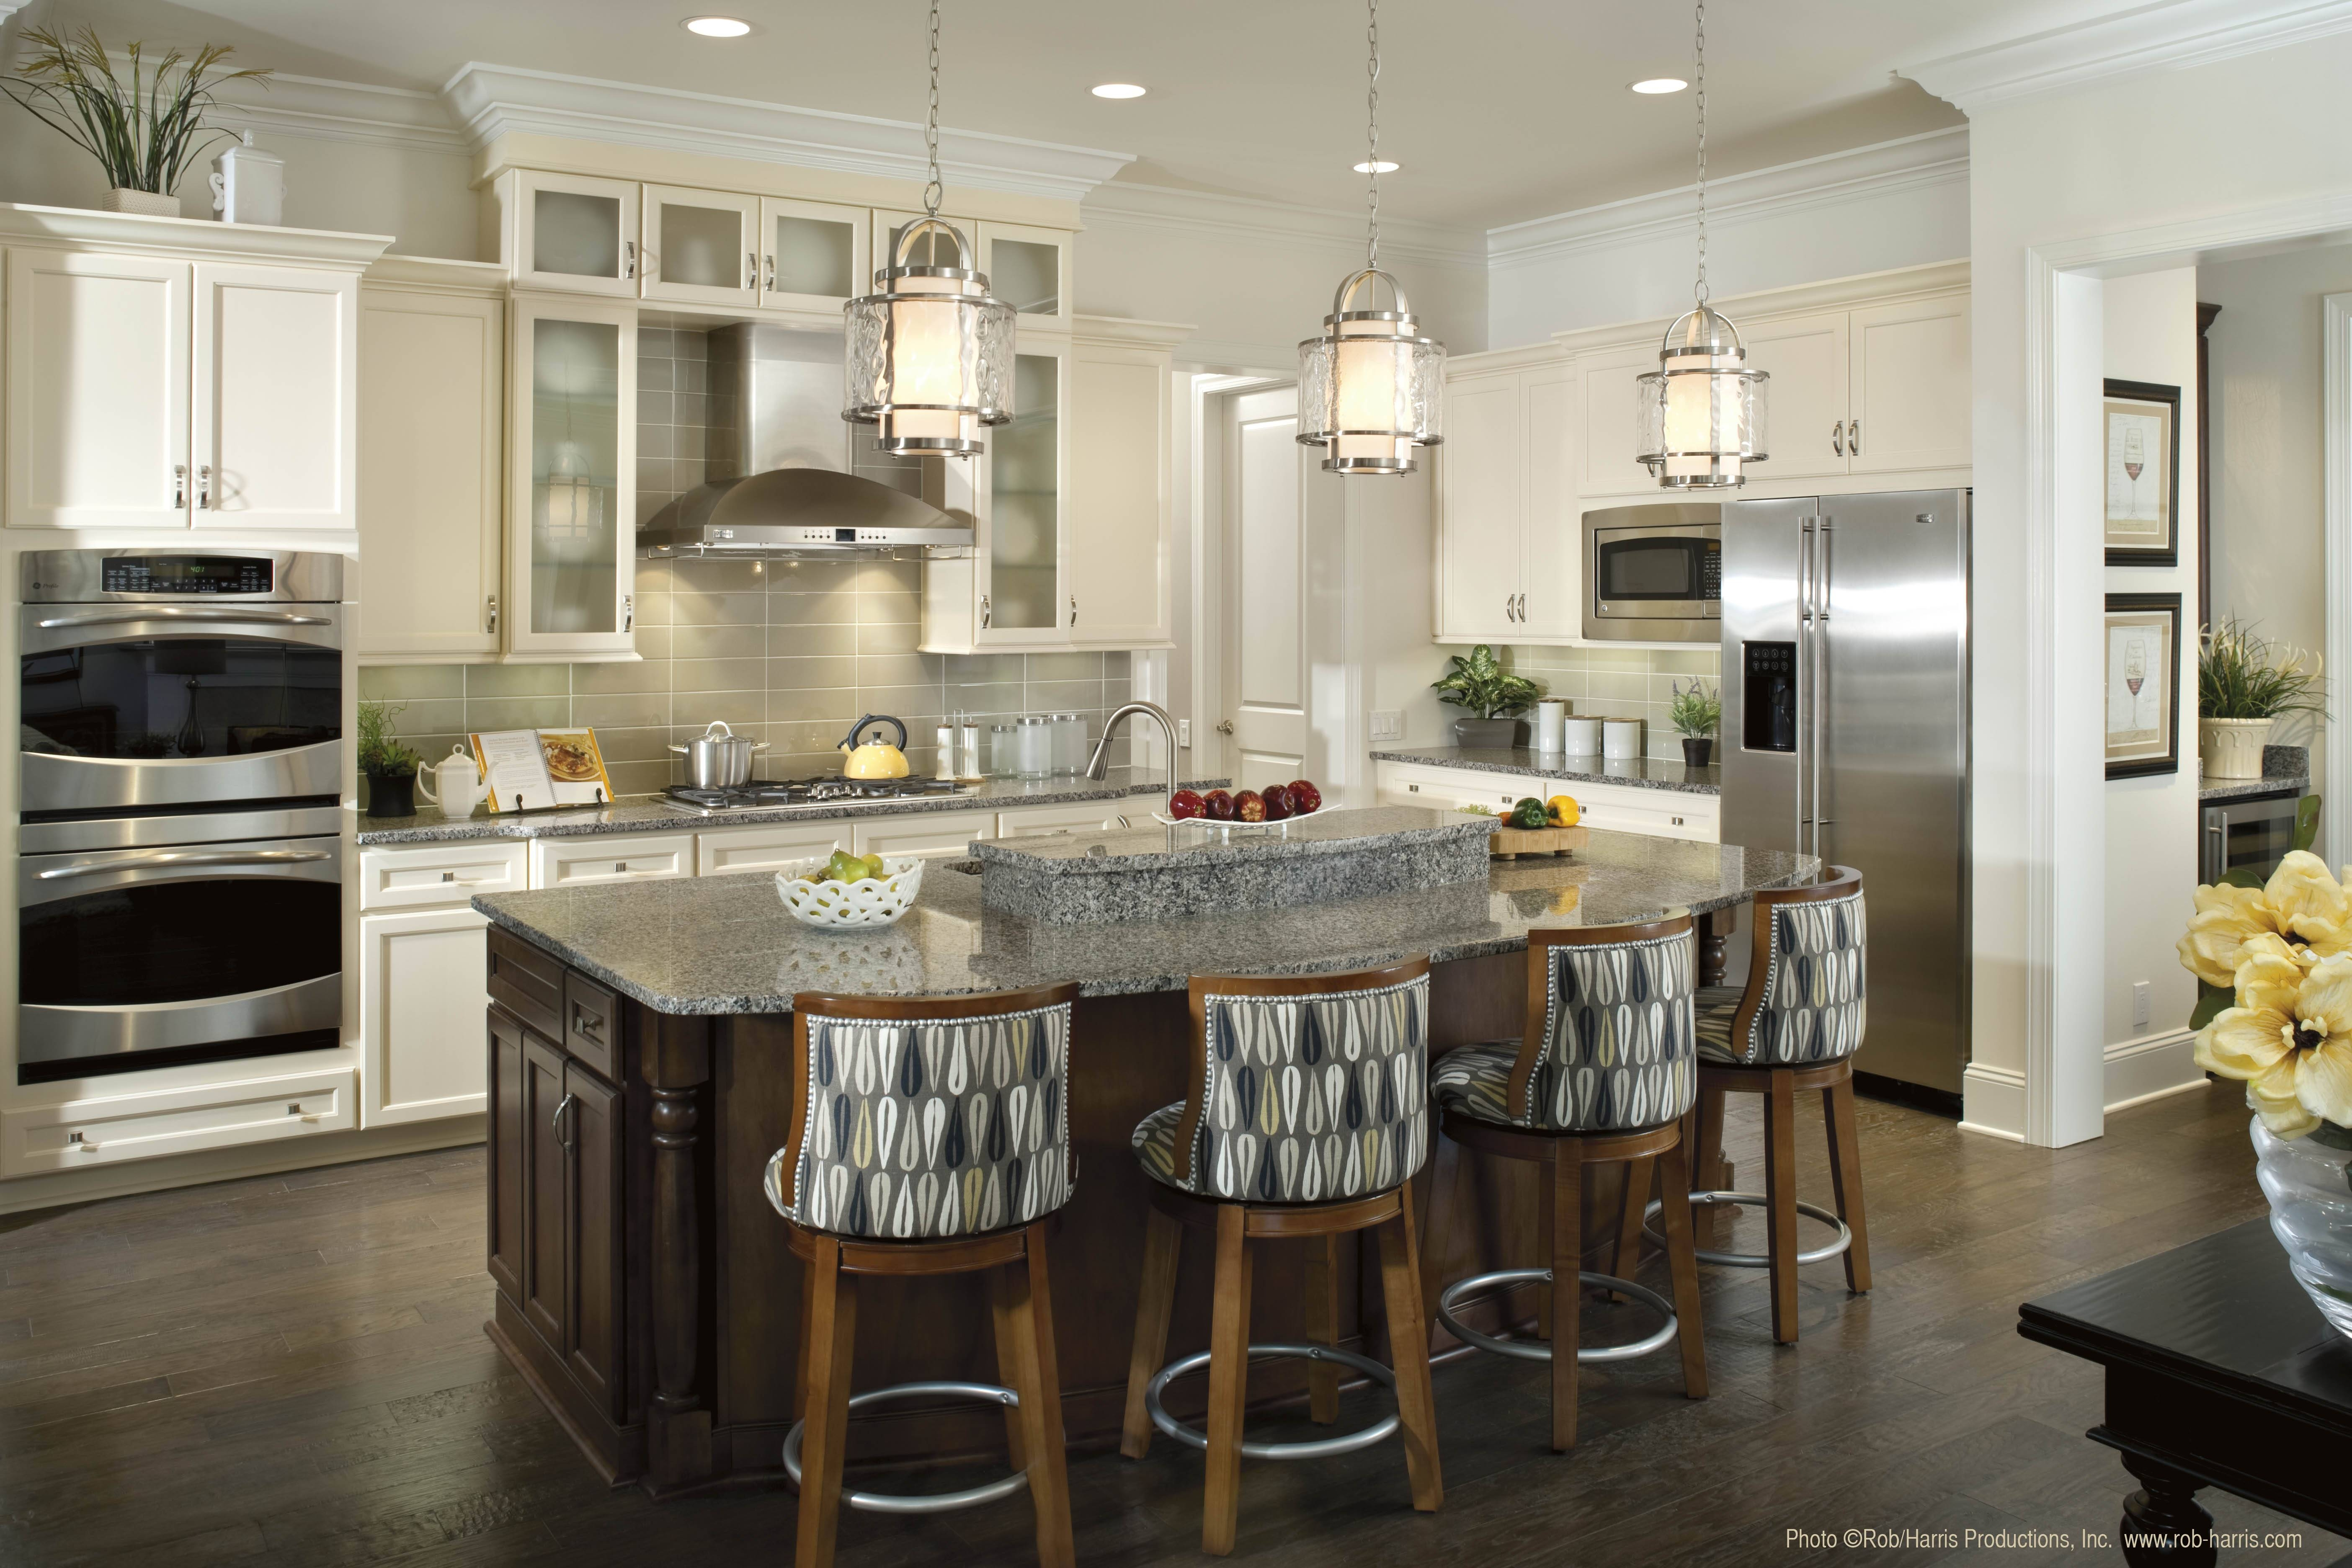 Pendant Lighting Ideas. Rustic Small Kitchen Island Pendant Lights with Island Pendant Lights (Image 13 of 15)